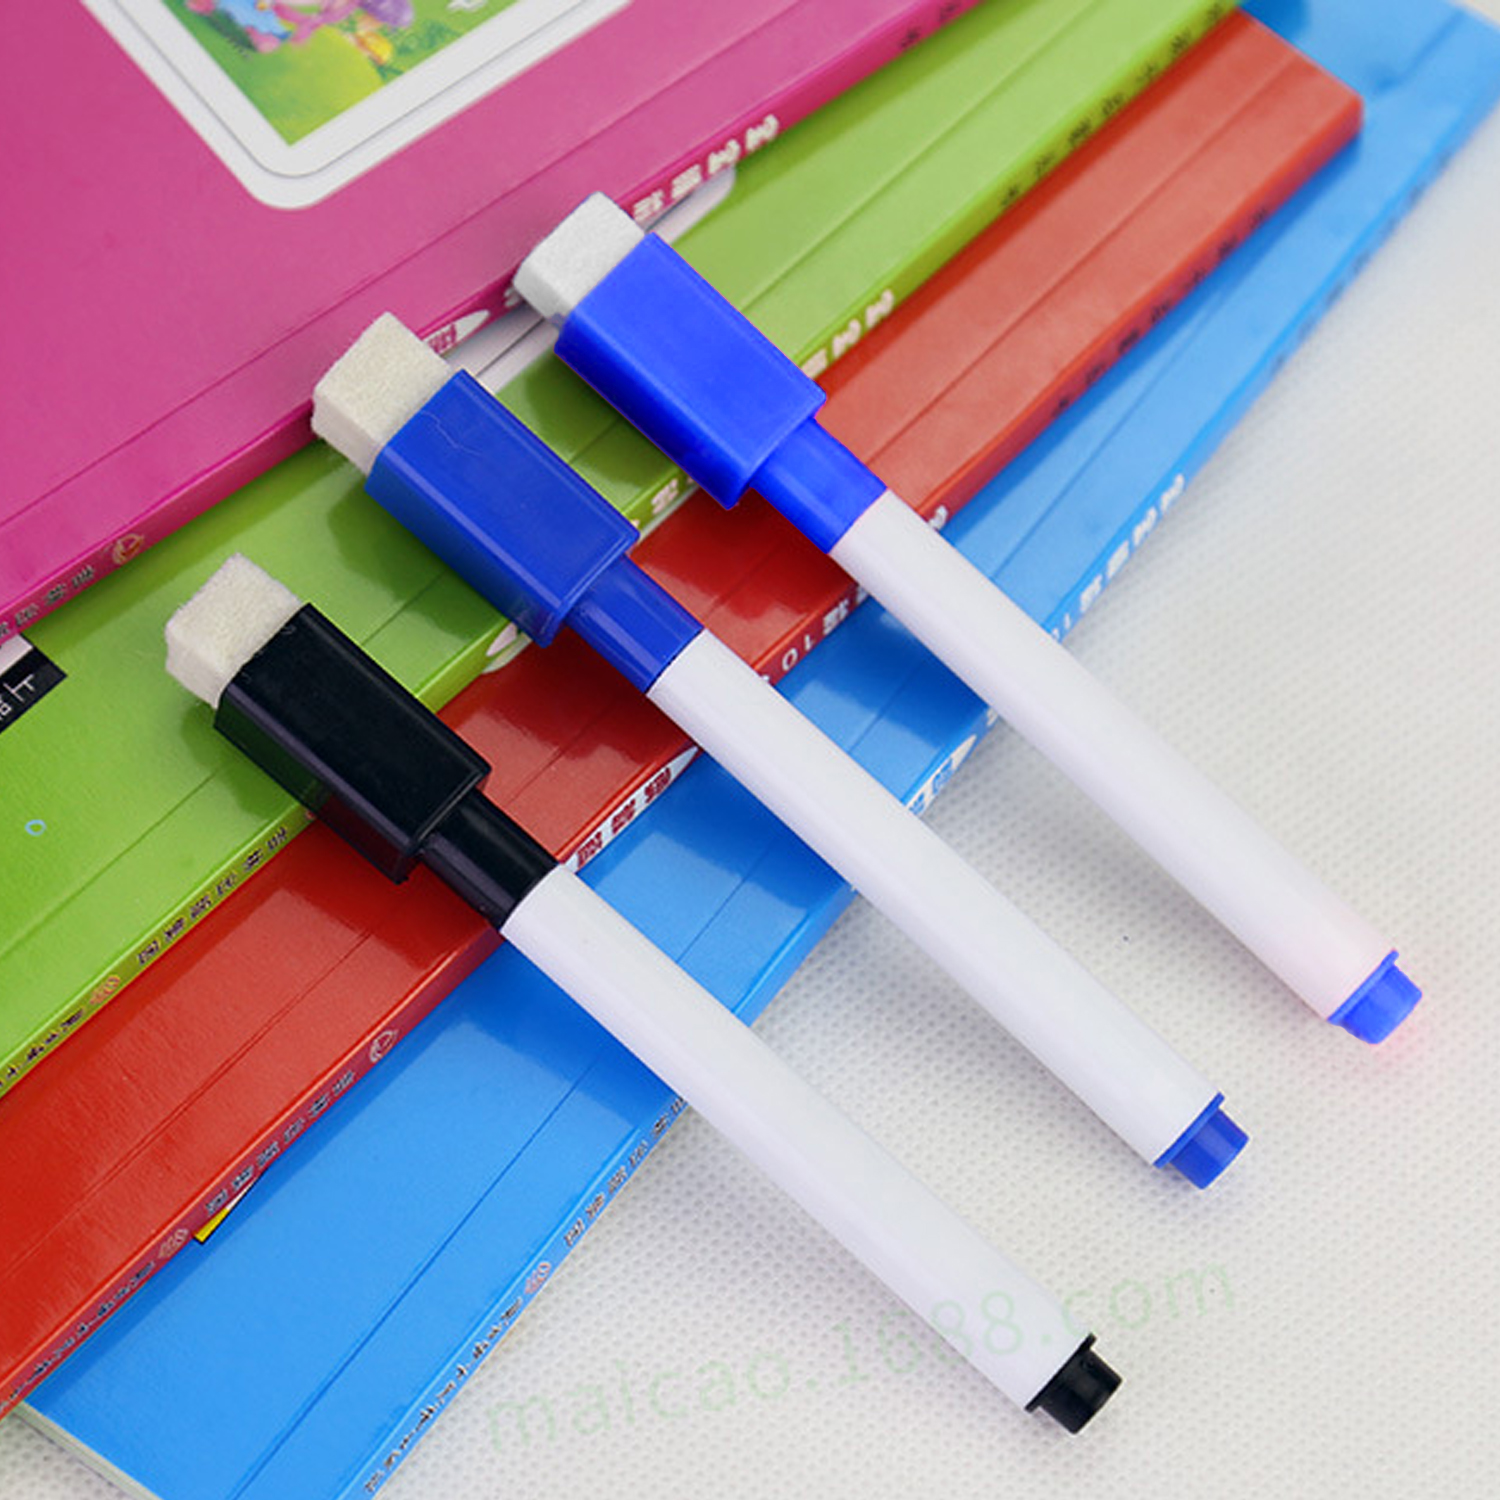 10PCS Kids Erasable Magnetic Whiteboard Pen Rewritable Dry Erase White Board Markers Pens For Home Office School Stationery